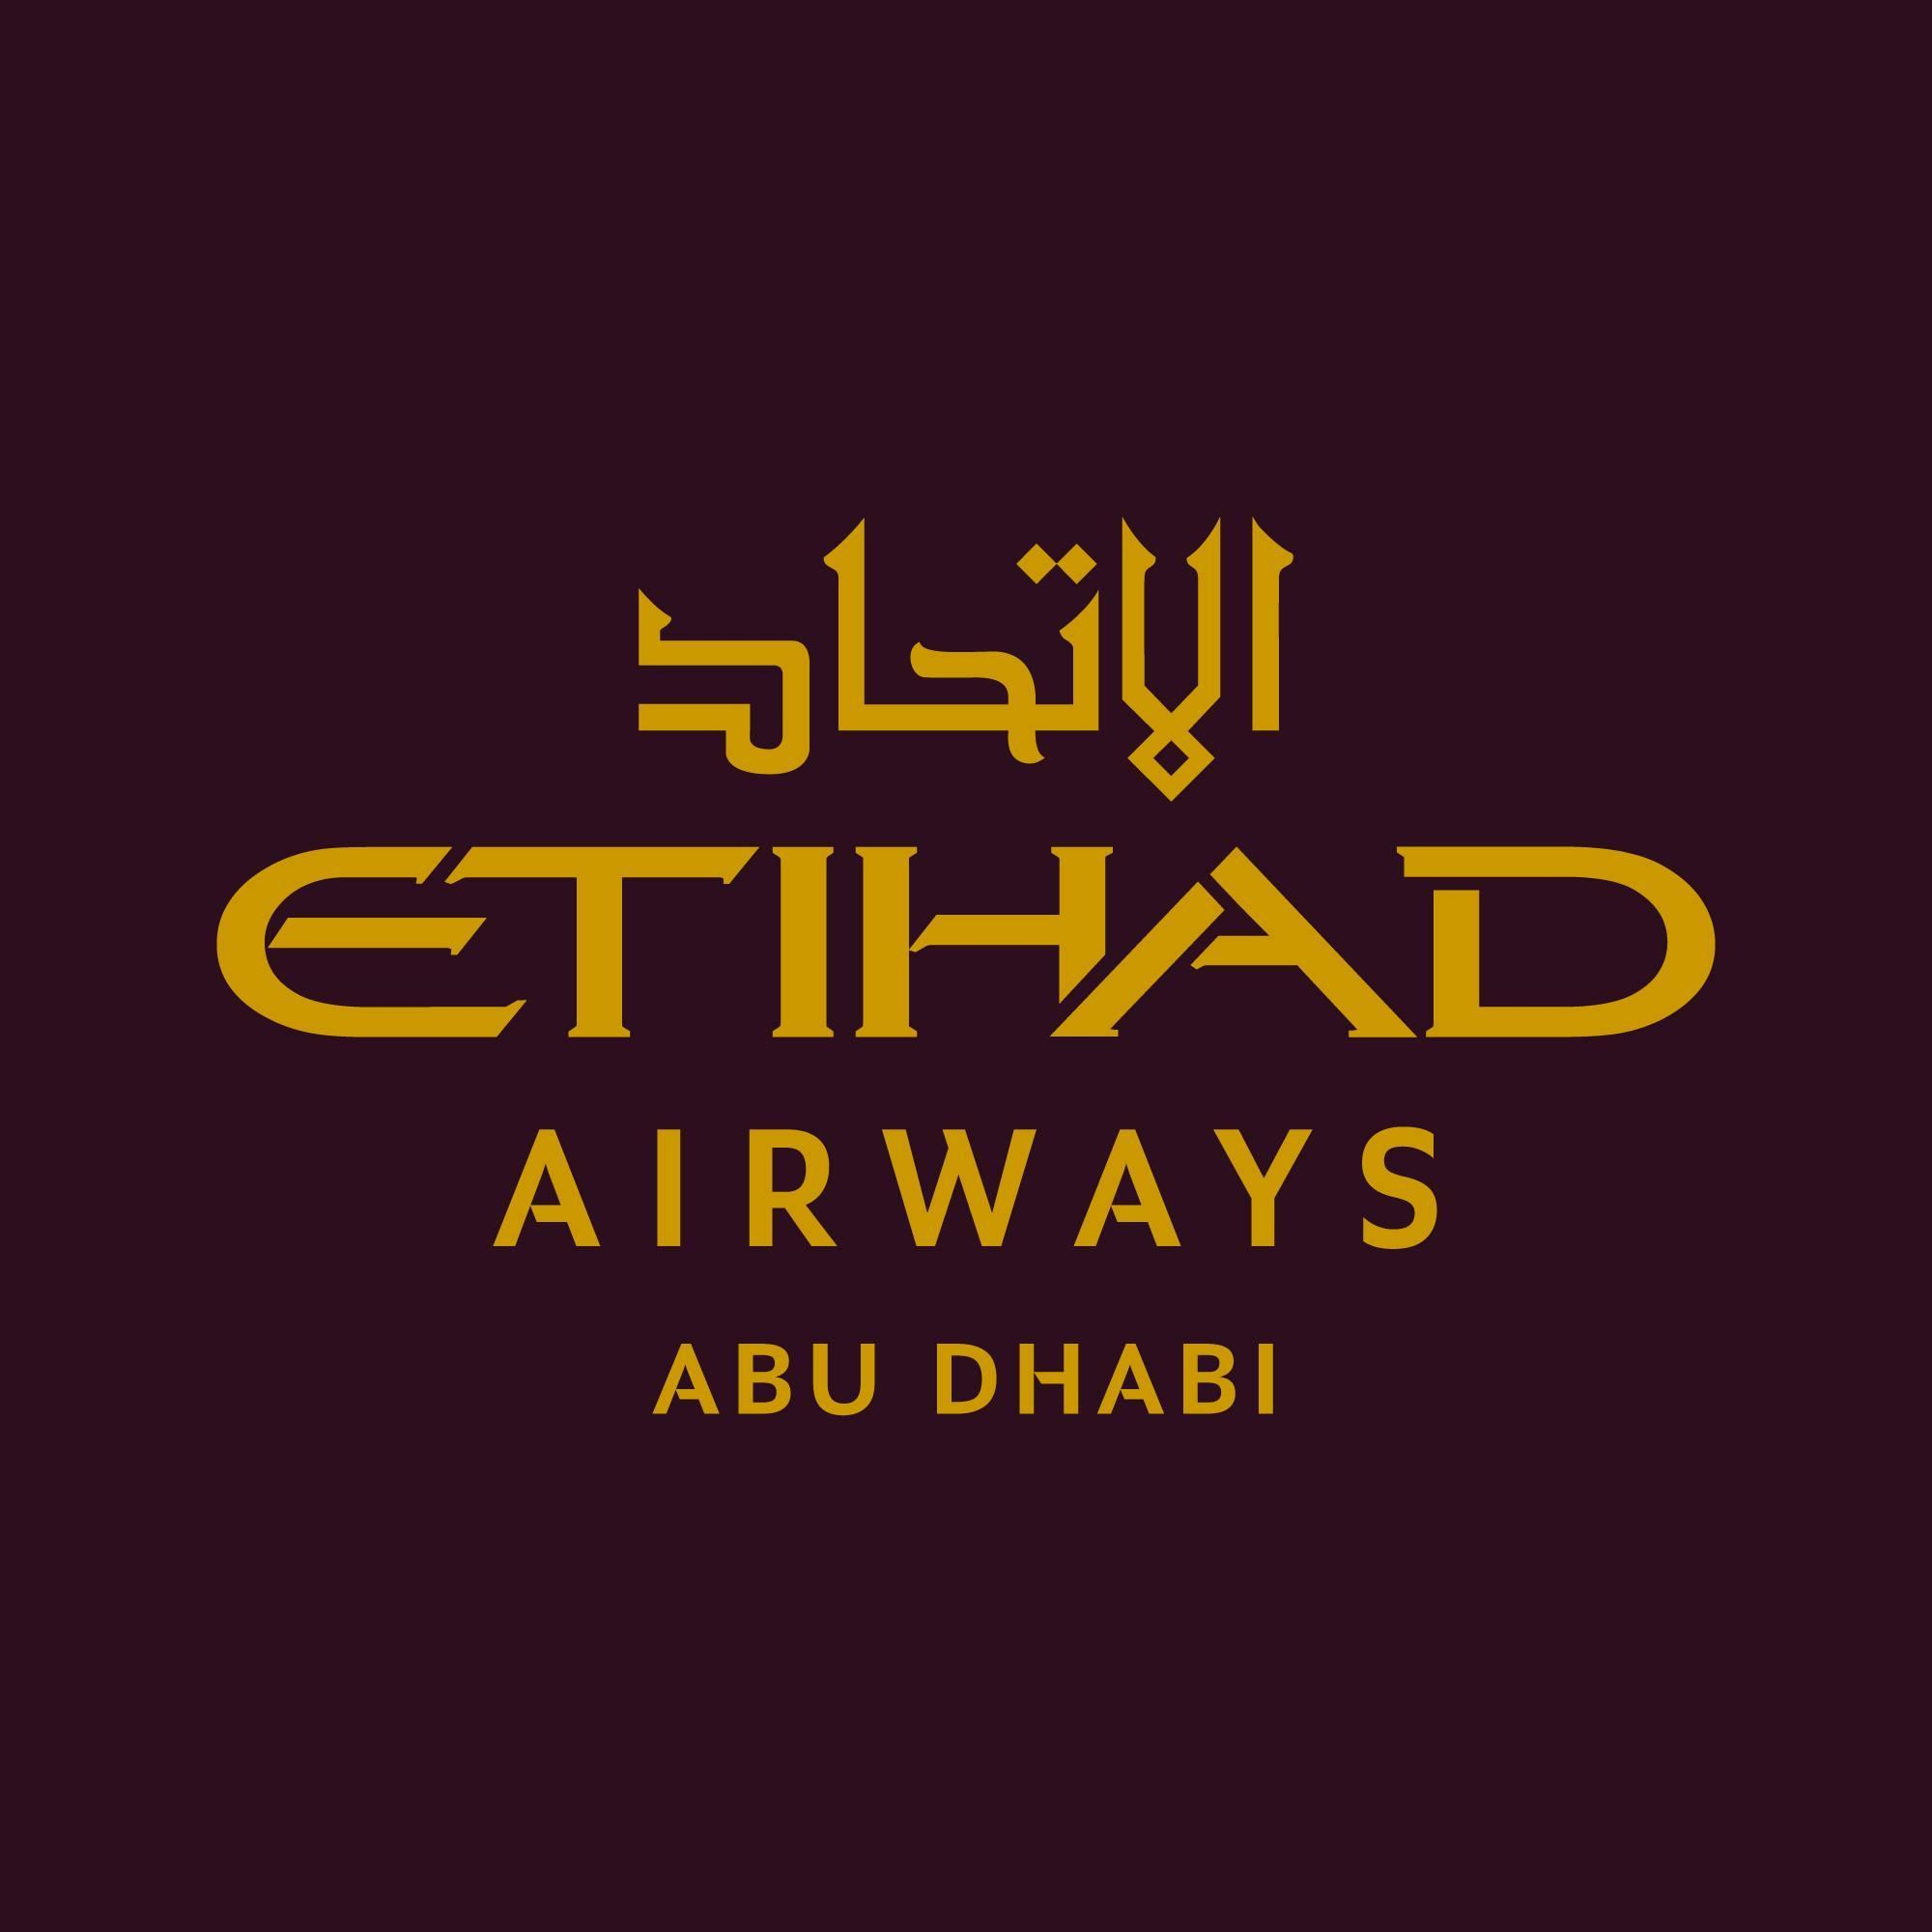 Etihad Airways - Airlines Affiliate Programs